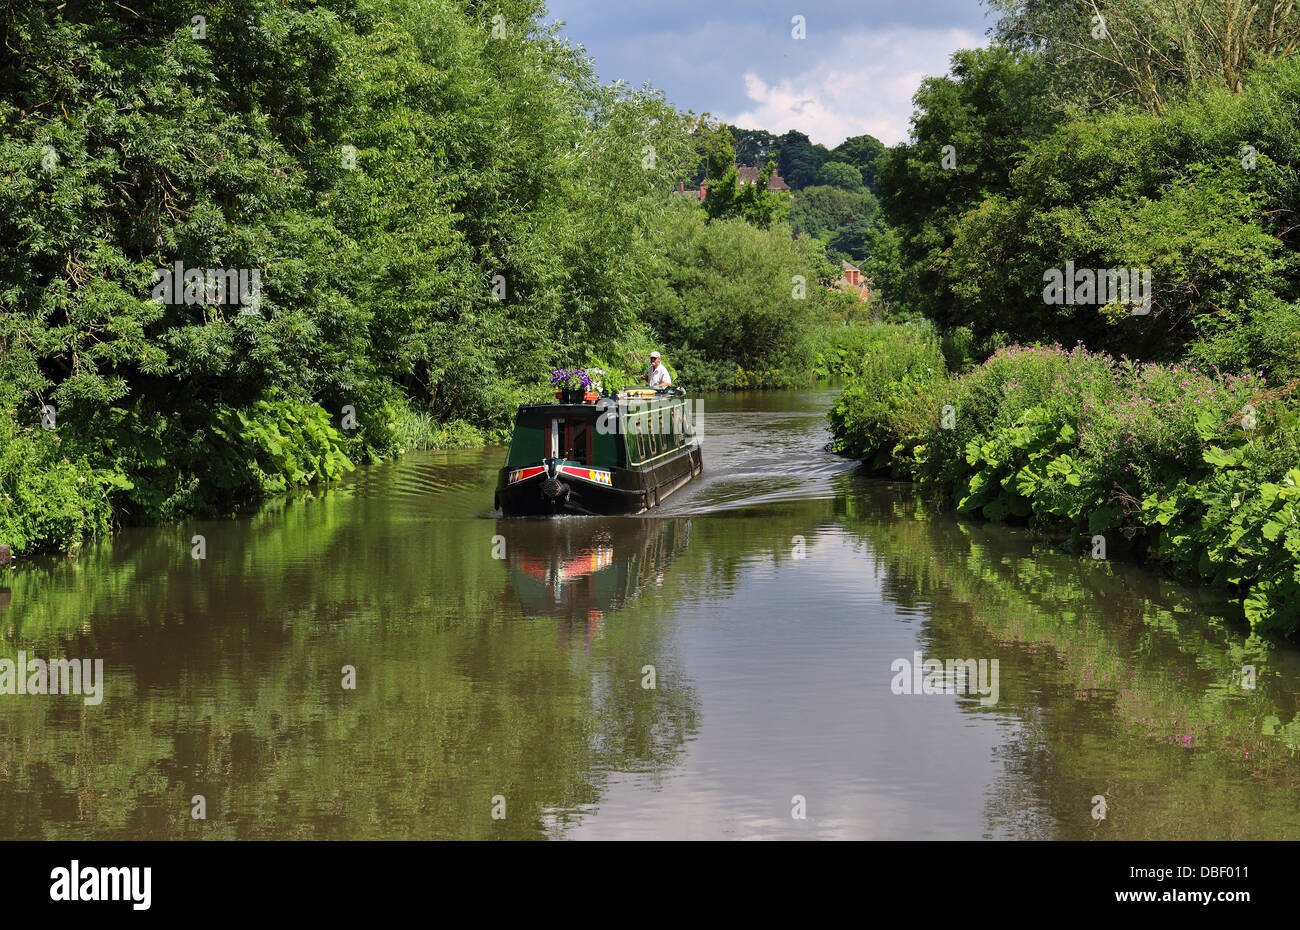 Narrowboat on the Kennet & Avon Canal in Berkshire - Stock Image